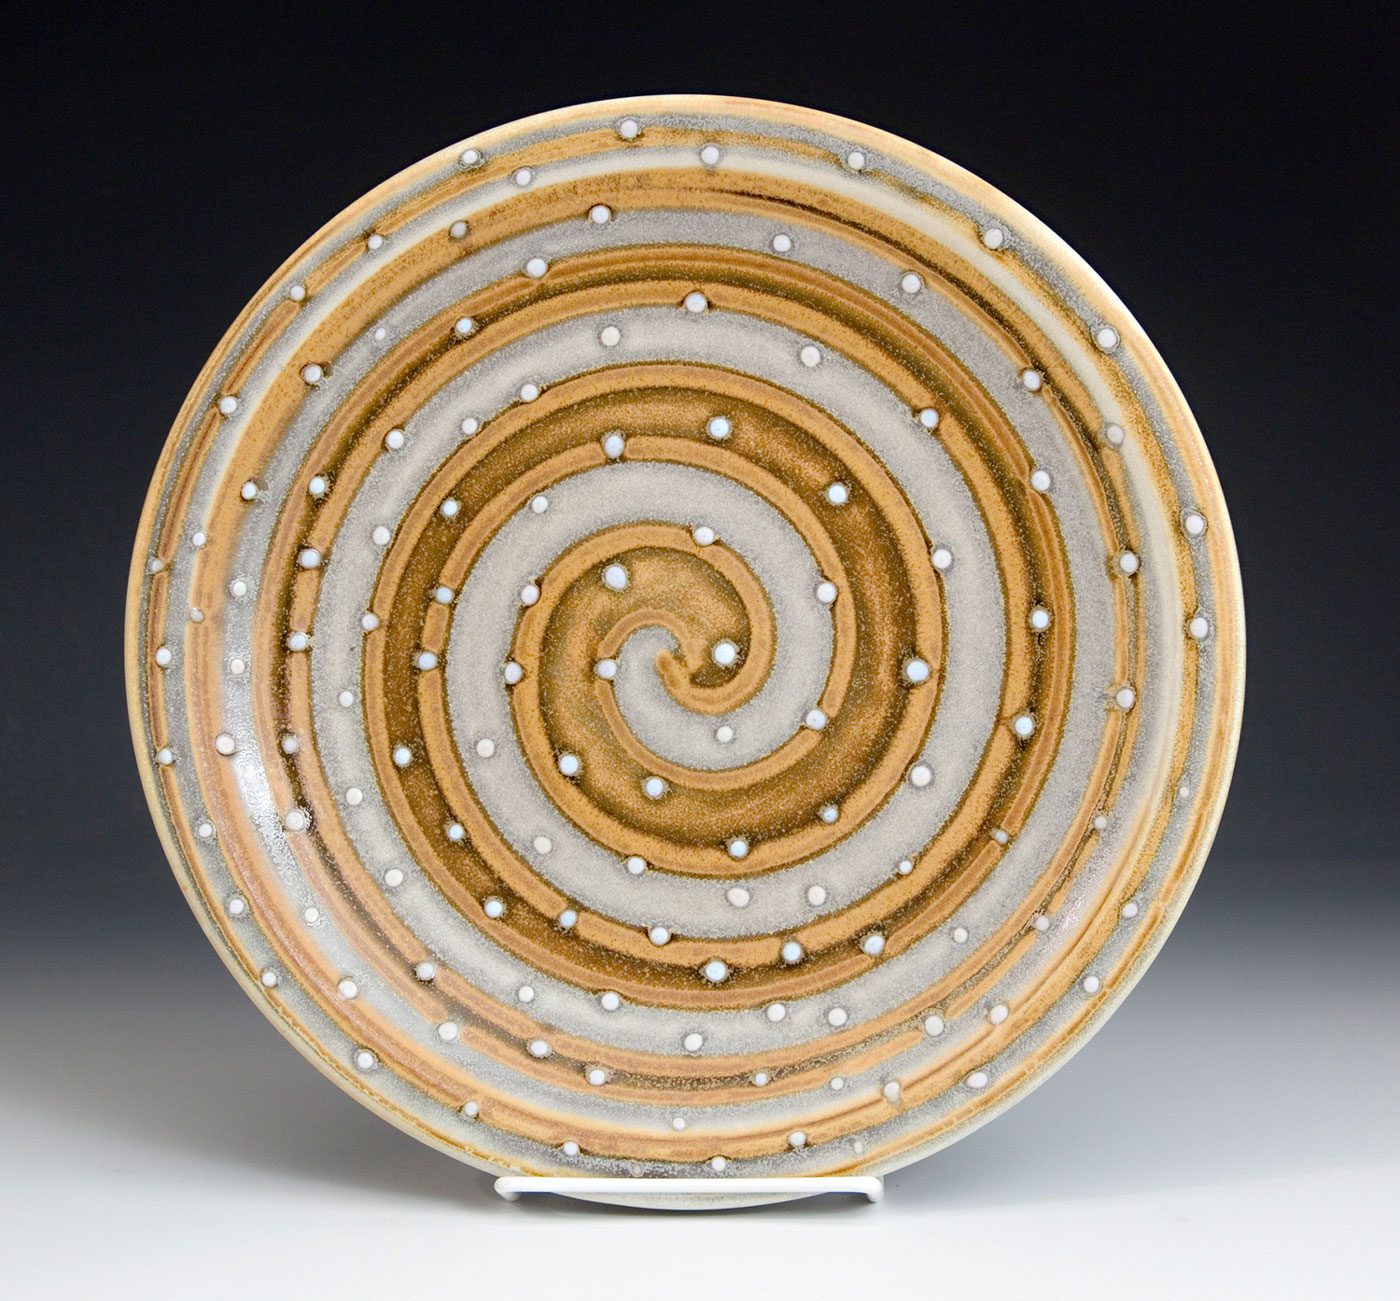 Plate-with-Spiral-and-Dots-Functional-Pottery-Samantha-Henneke.jpg